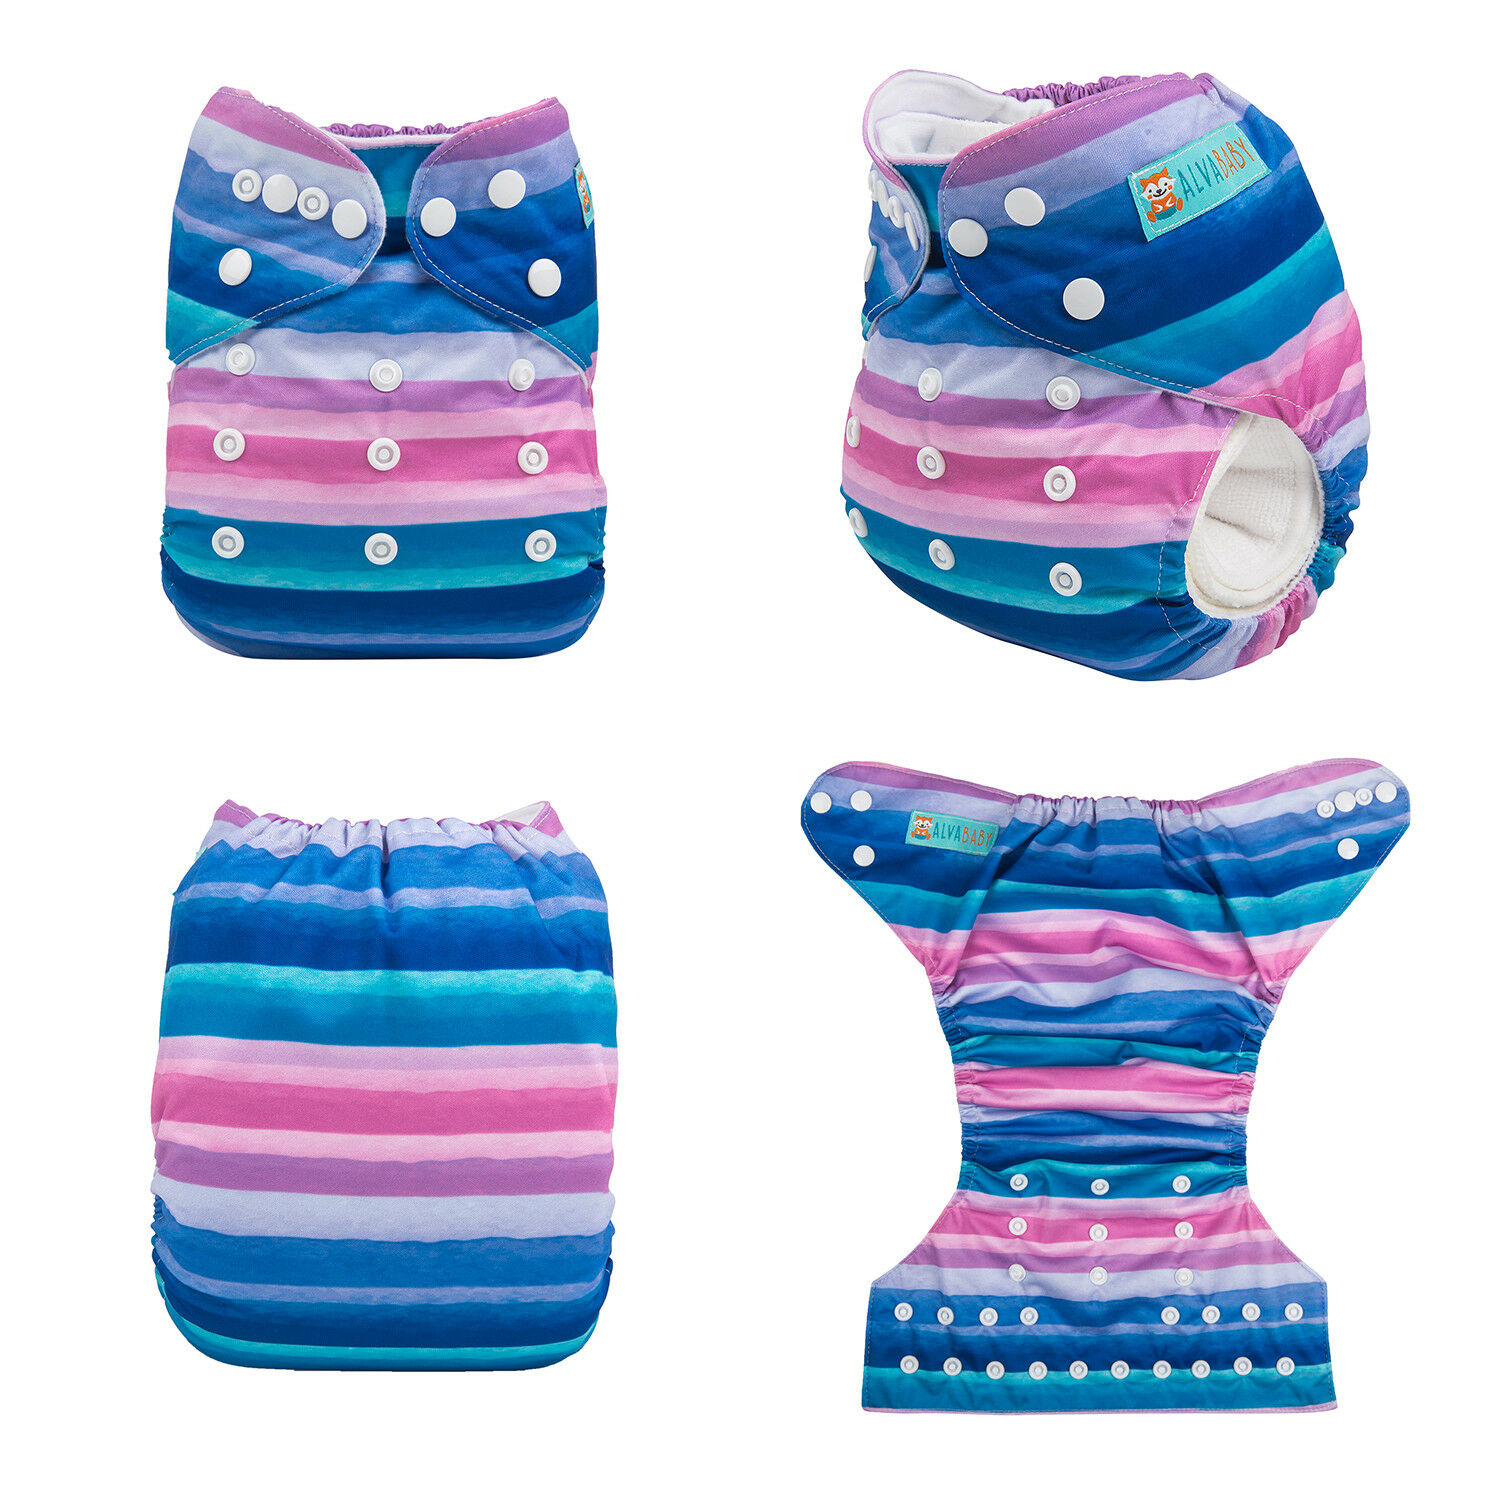 ALVABABY Reusable Baby Cloth Diapers OneSize Washable Pocket Nappies With Insert YD190